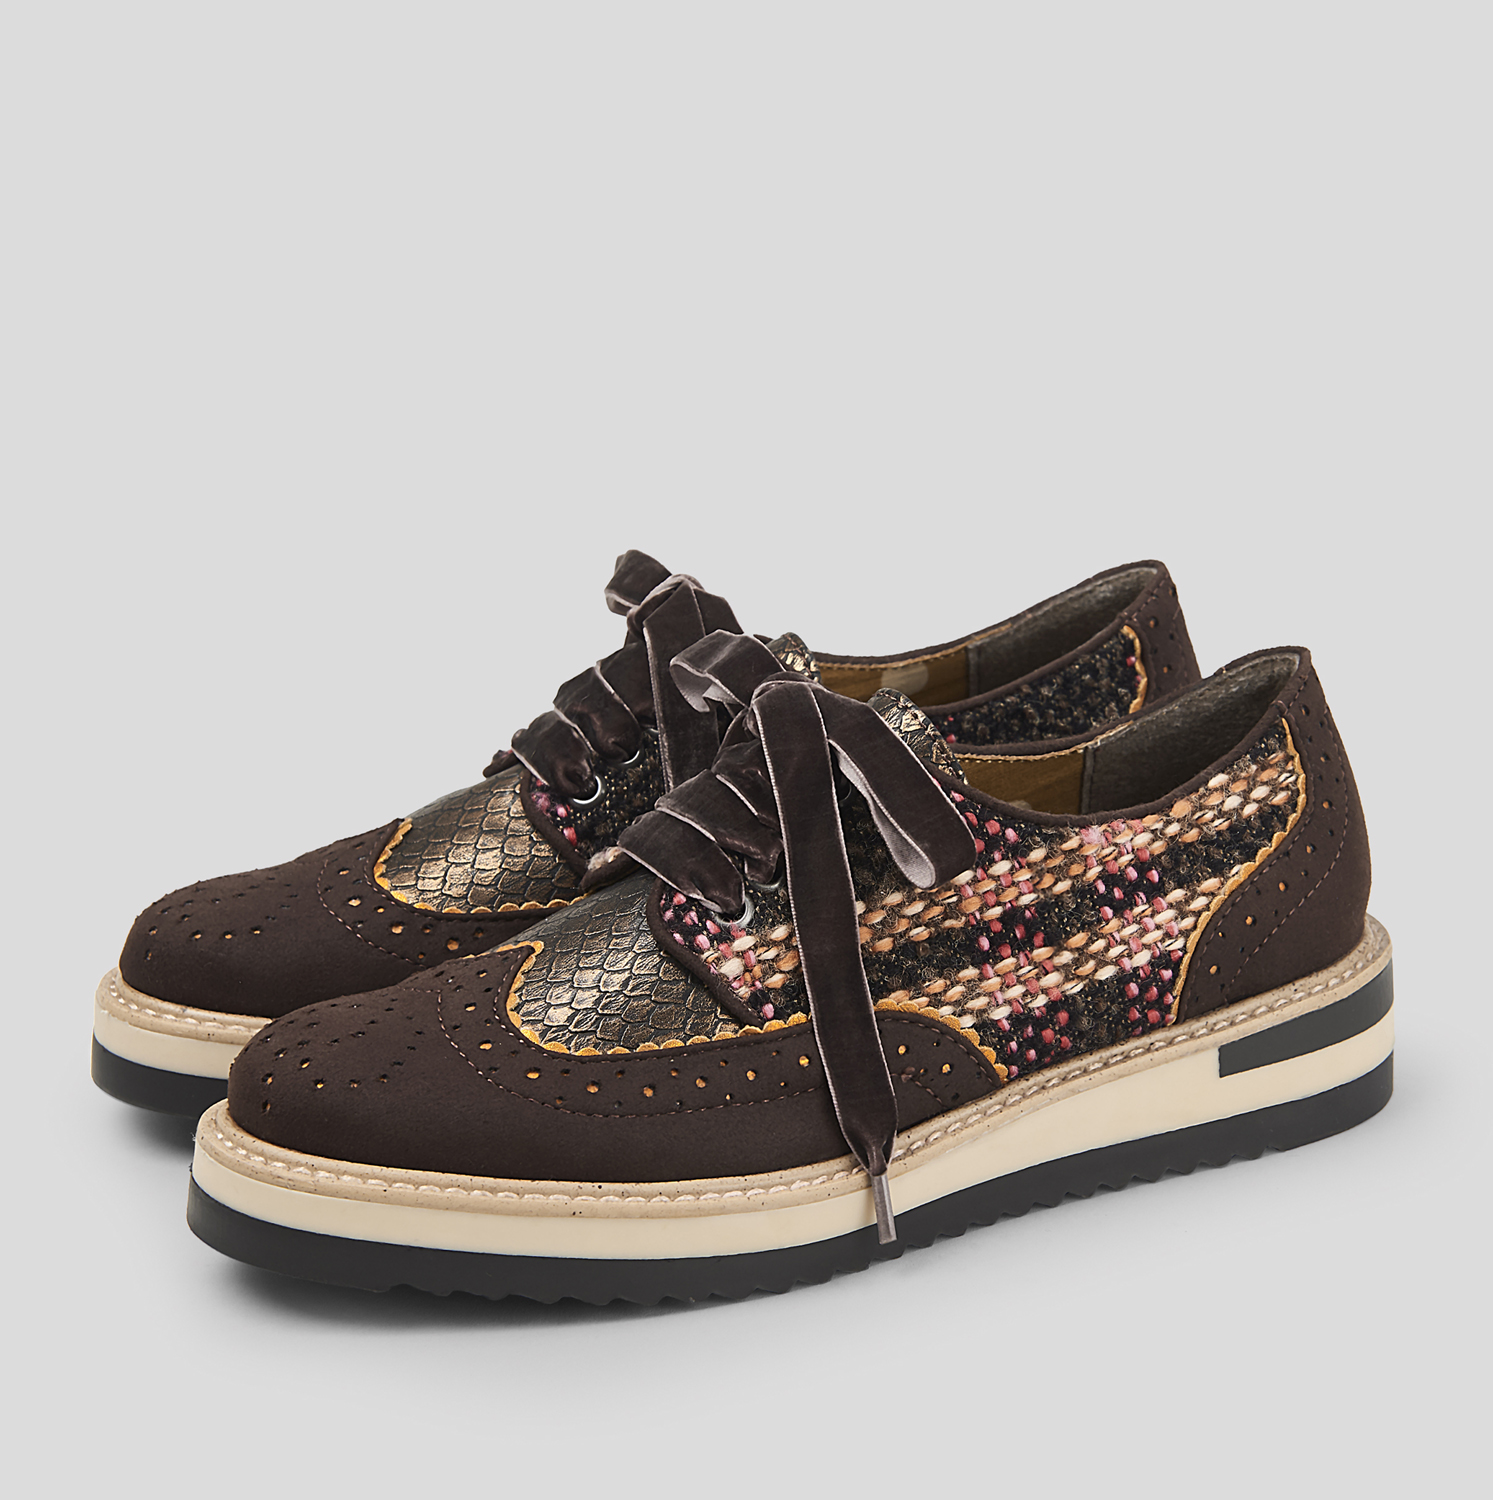 Ruby Shoo Davina Lace Up   Up Loafer Schuhes Chocolate Tweed UK 2- 9 EU 35-42 d824ae